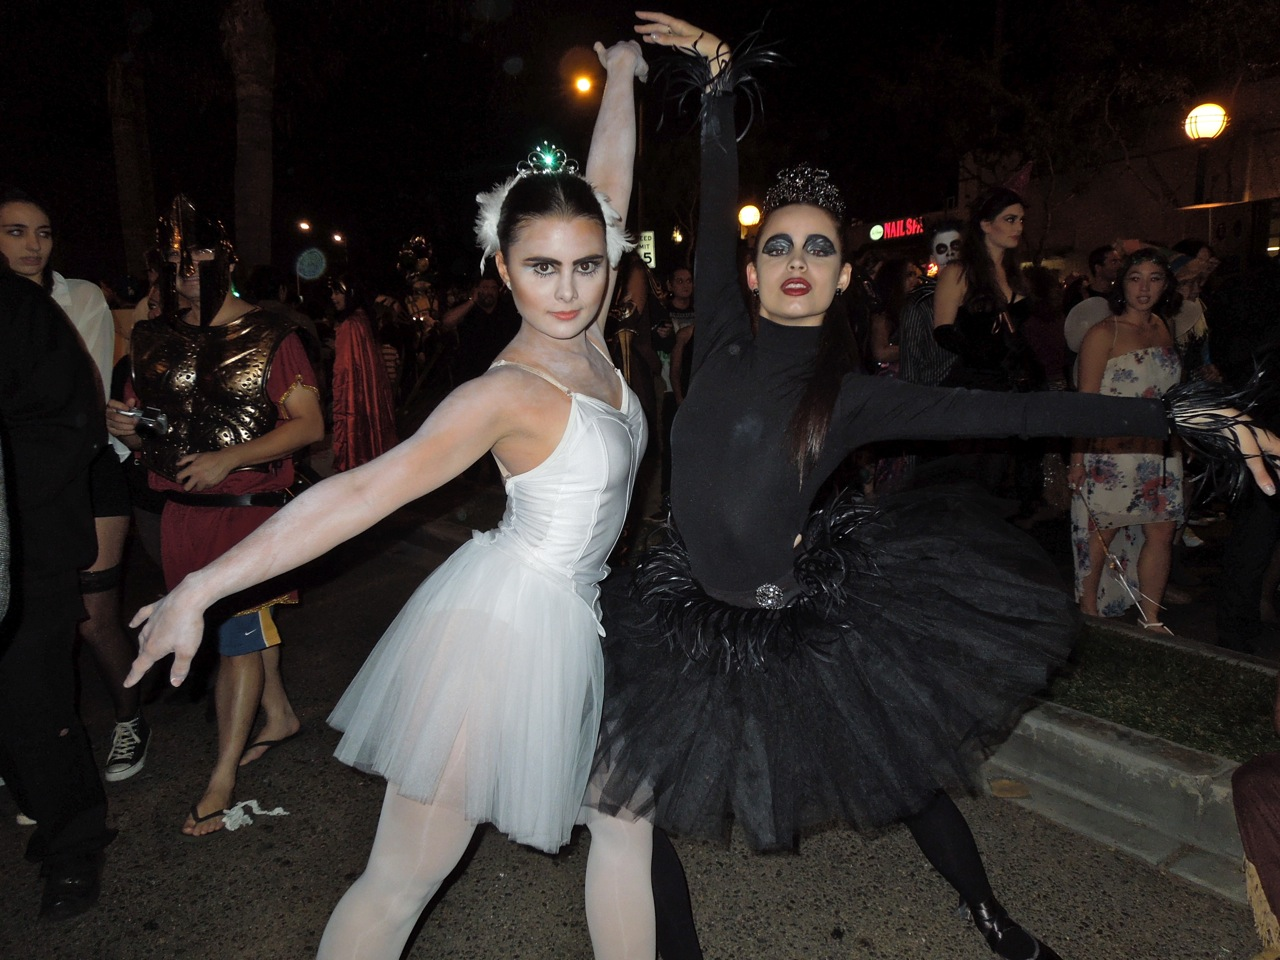 black swan west hollywood halloween carnaval. Black Bedroom Furniture Sets. Home Design Ideas